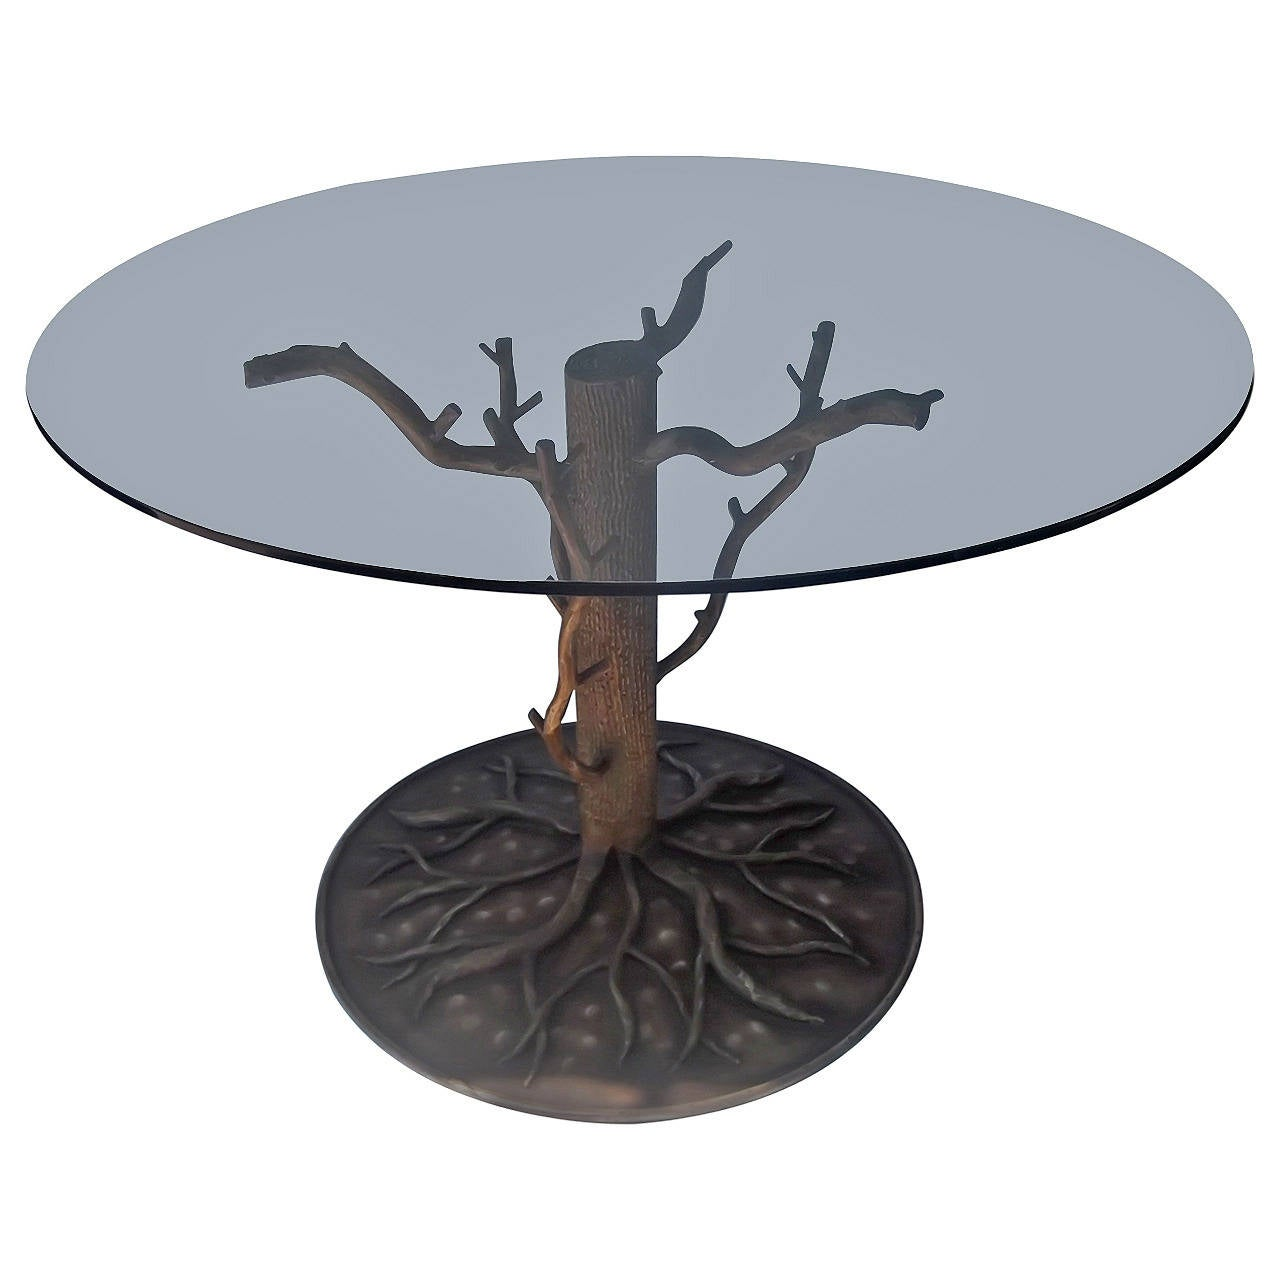 Painted Steel Quot Tree And Branch Quot Center Dining Table For